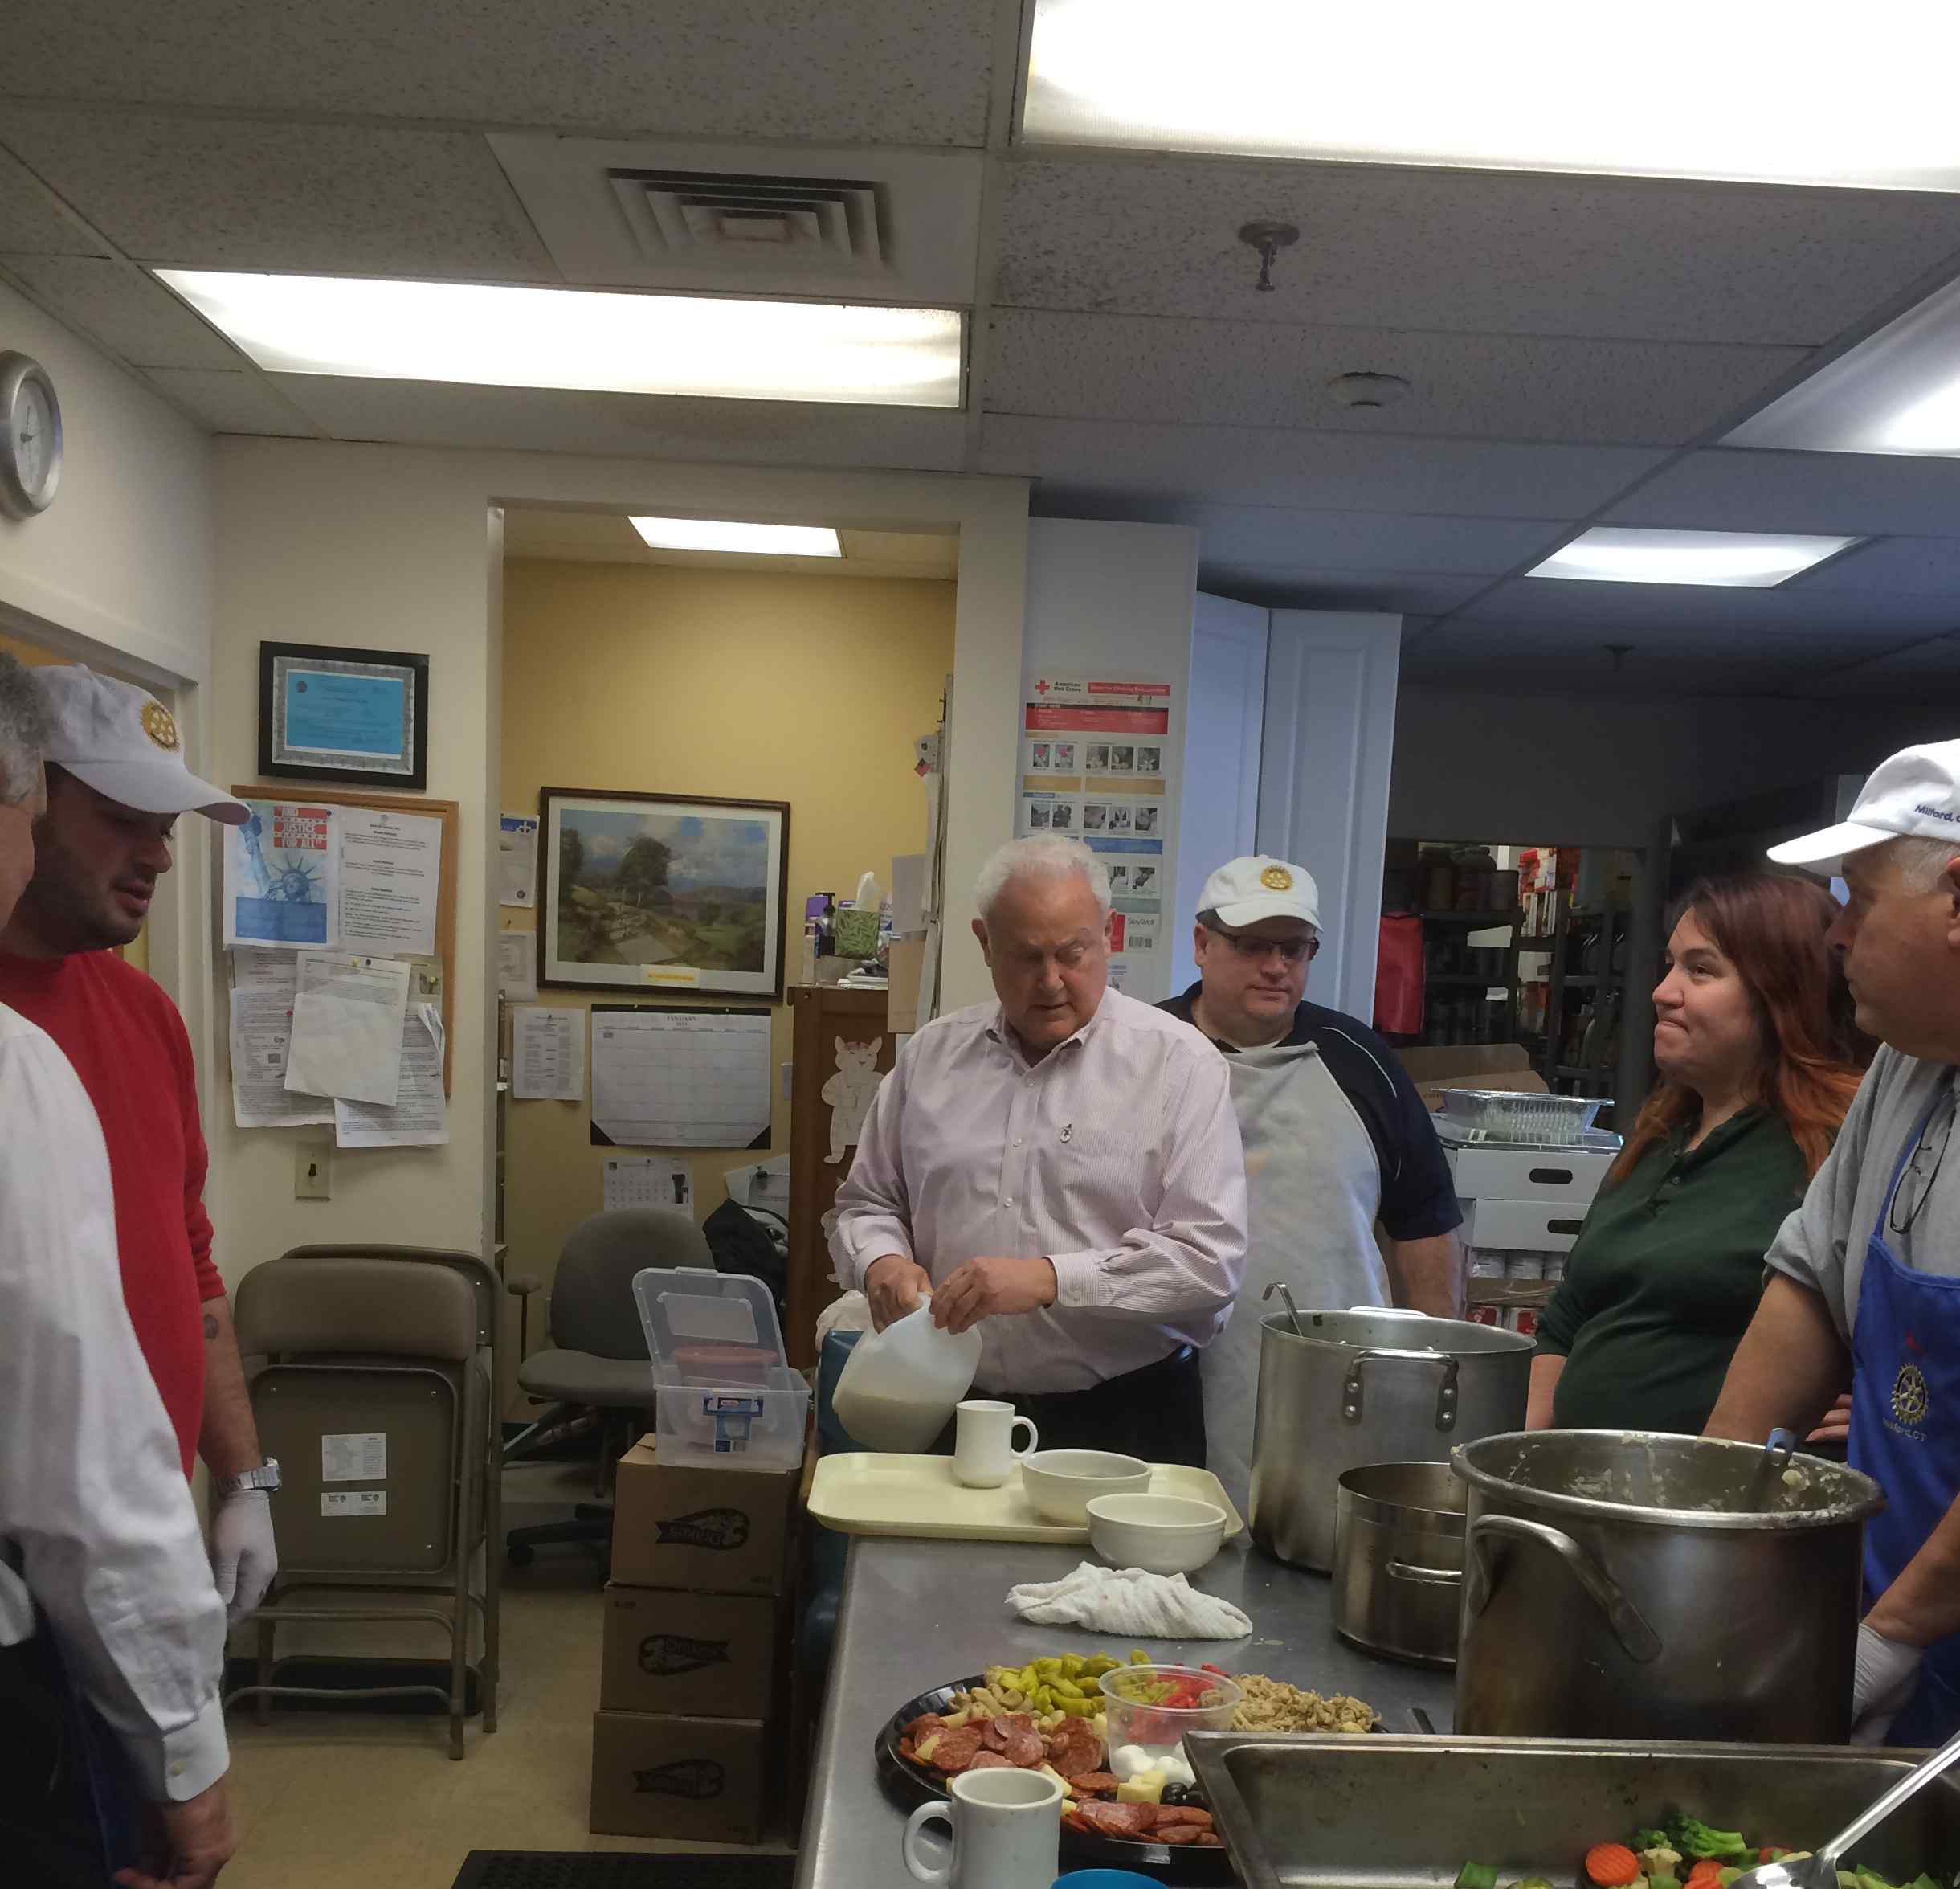 Soup Kitchen Volunteer Ct: Milford Rotary Rolls Up Their Sleeves For The Beth-El Soup